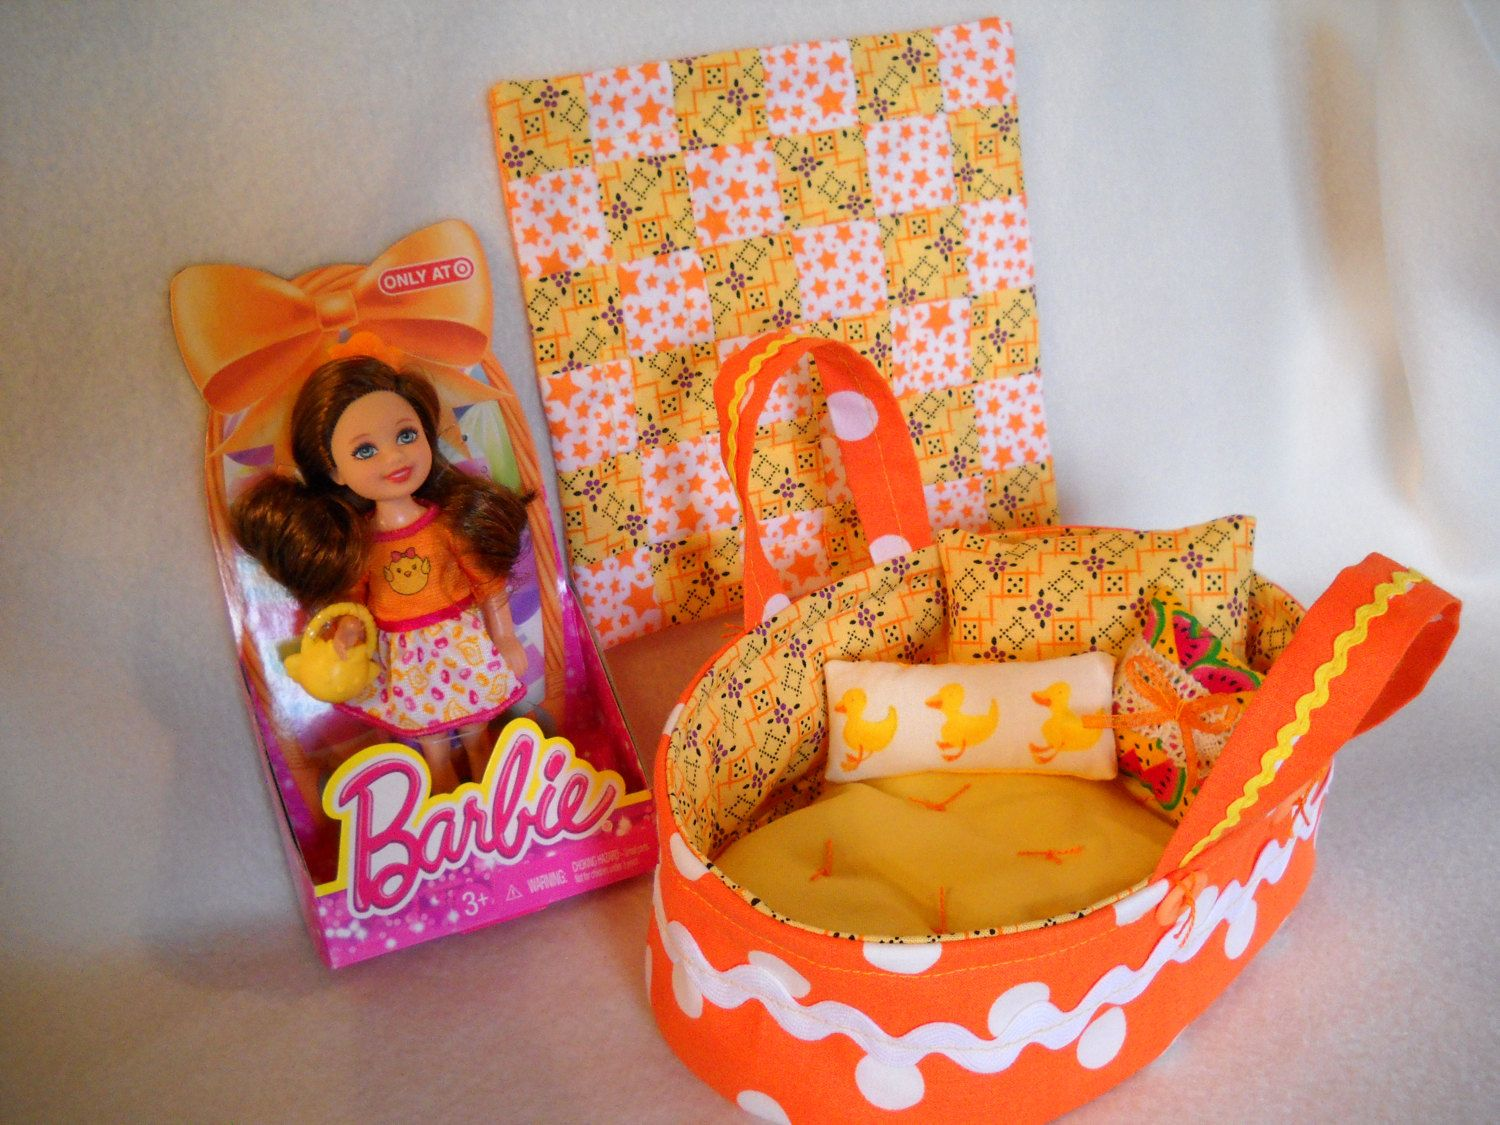 Kelly doll barbie doll toy mattel doll bed miniature quilt kelly doll barbie doll toy mattel doll bed miniature quilt handmade girl easter grandma gift girls birthday gift dolls and action figures negle Gallery